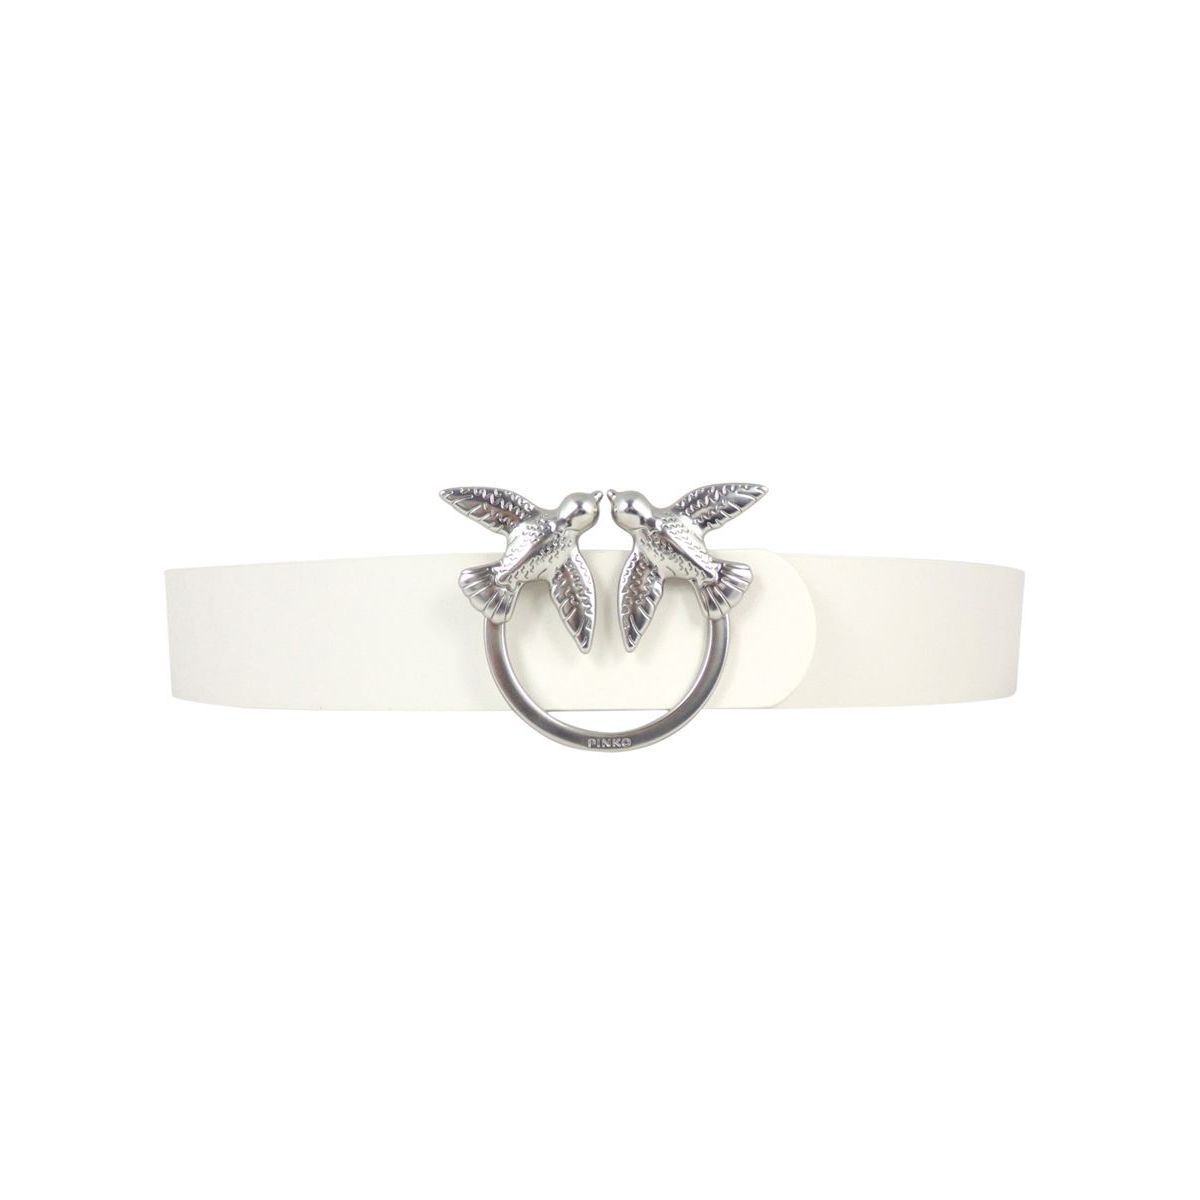 Berry Simple leather belt with Love Birds buckle White Pinko